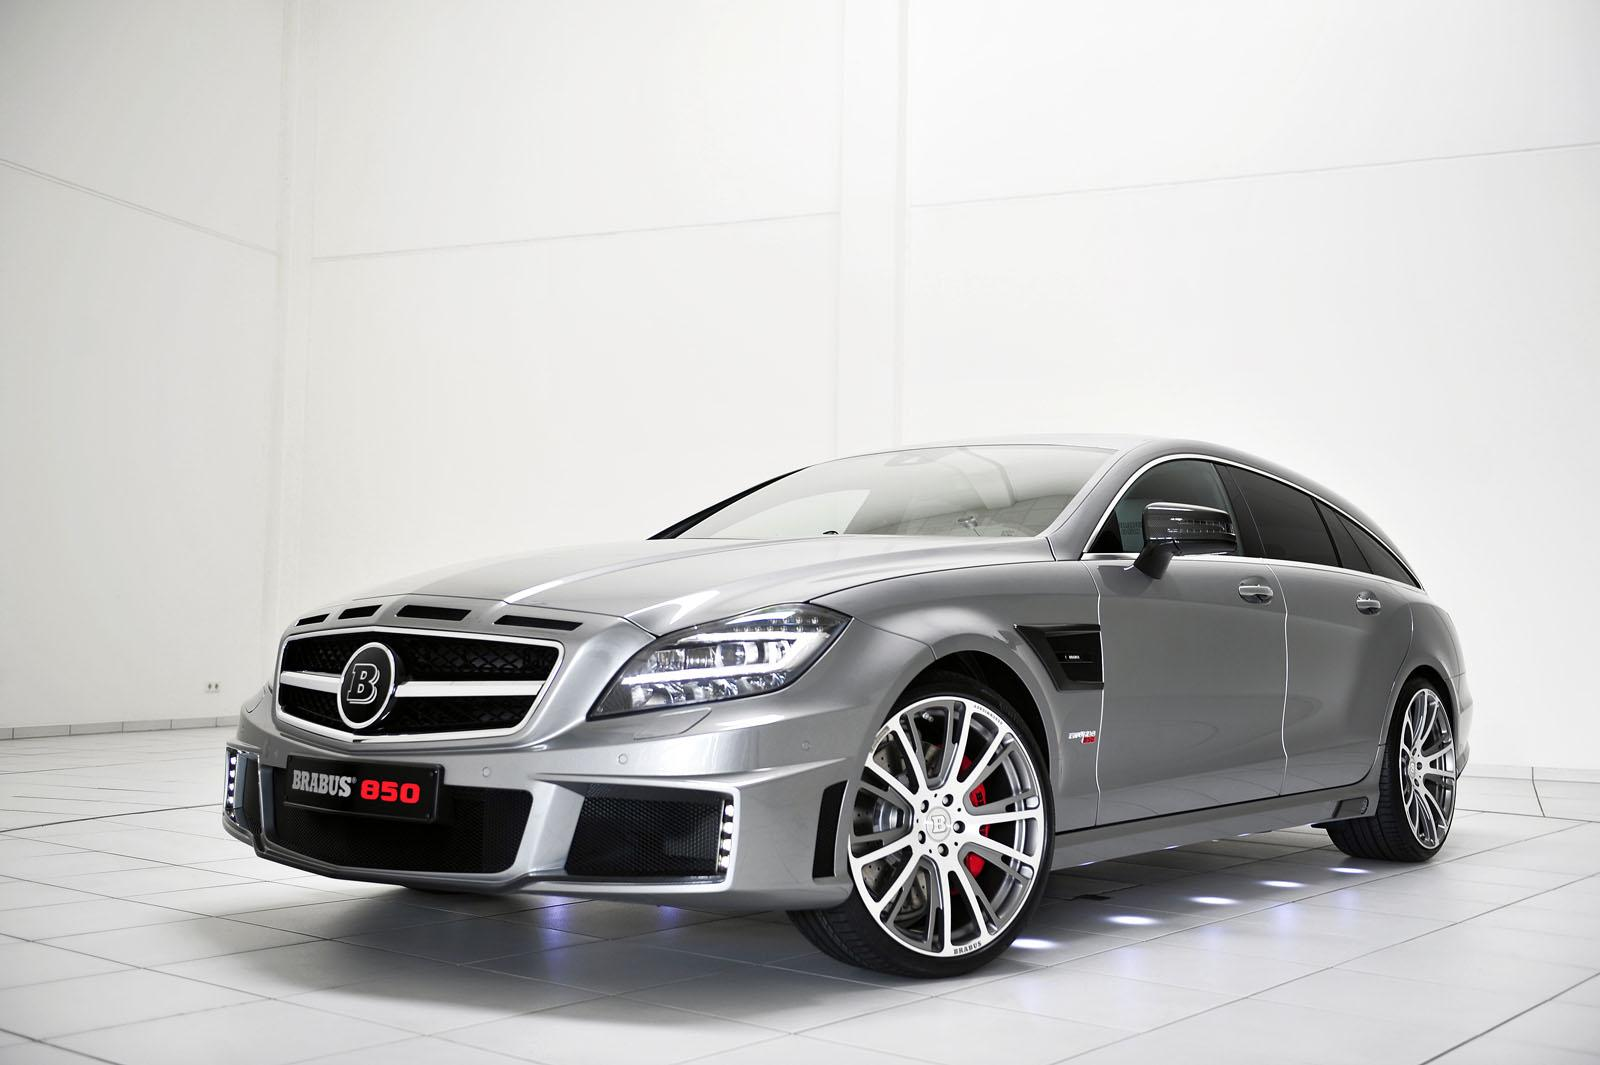 2013 Mercedes Benz Cls 63 Amg 4matic Shooting Brake 850 Biturbo By